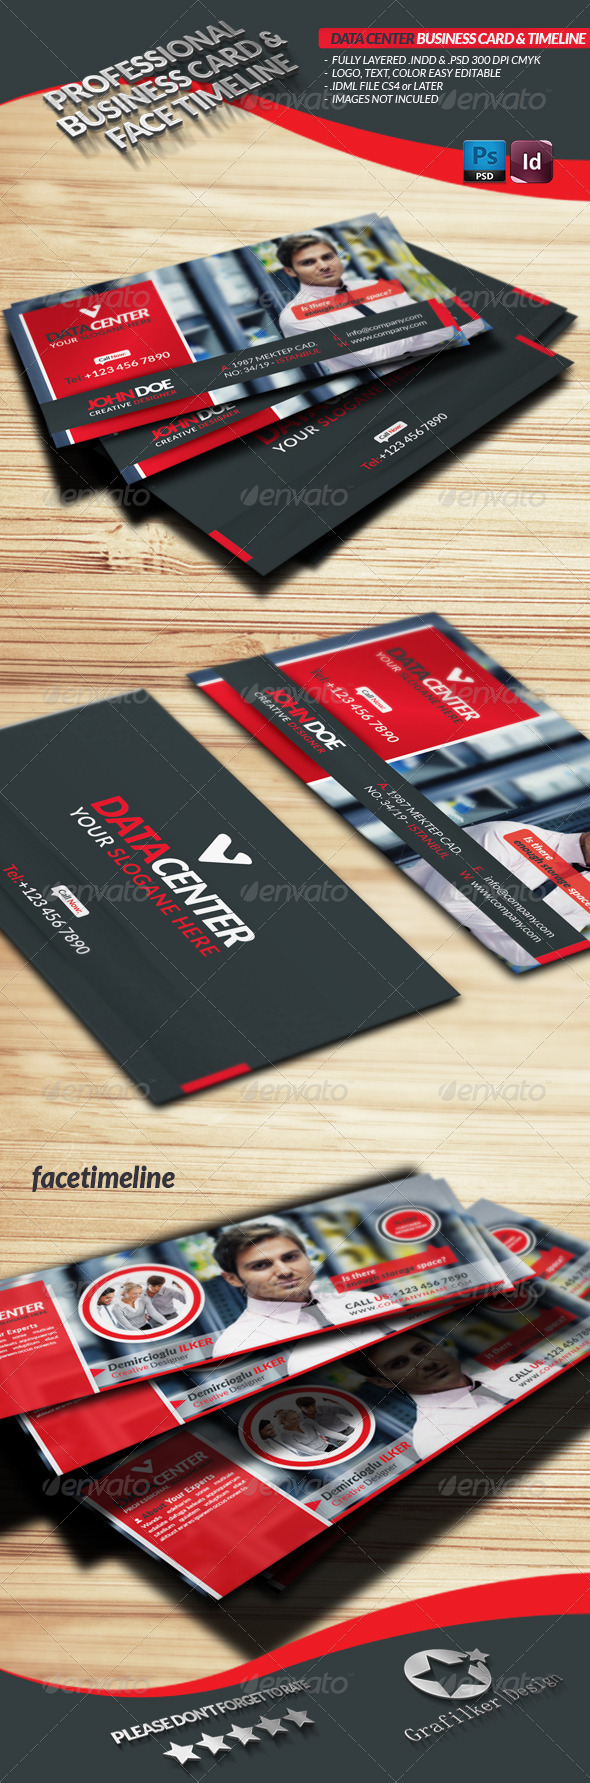 Data Center Business Card  Face-Timeline - Industry Specific Business Cards